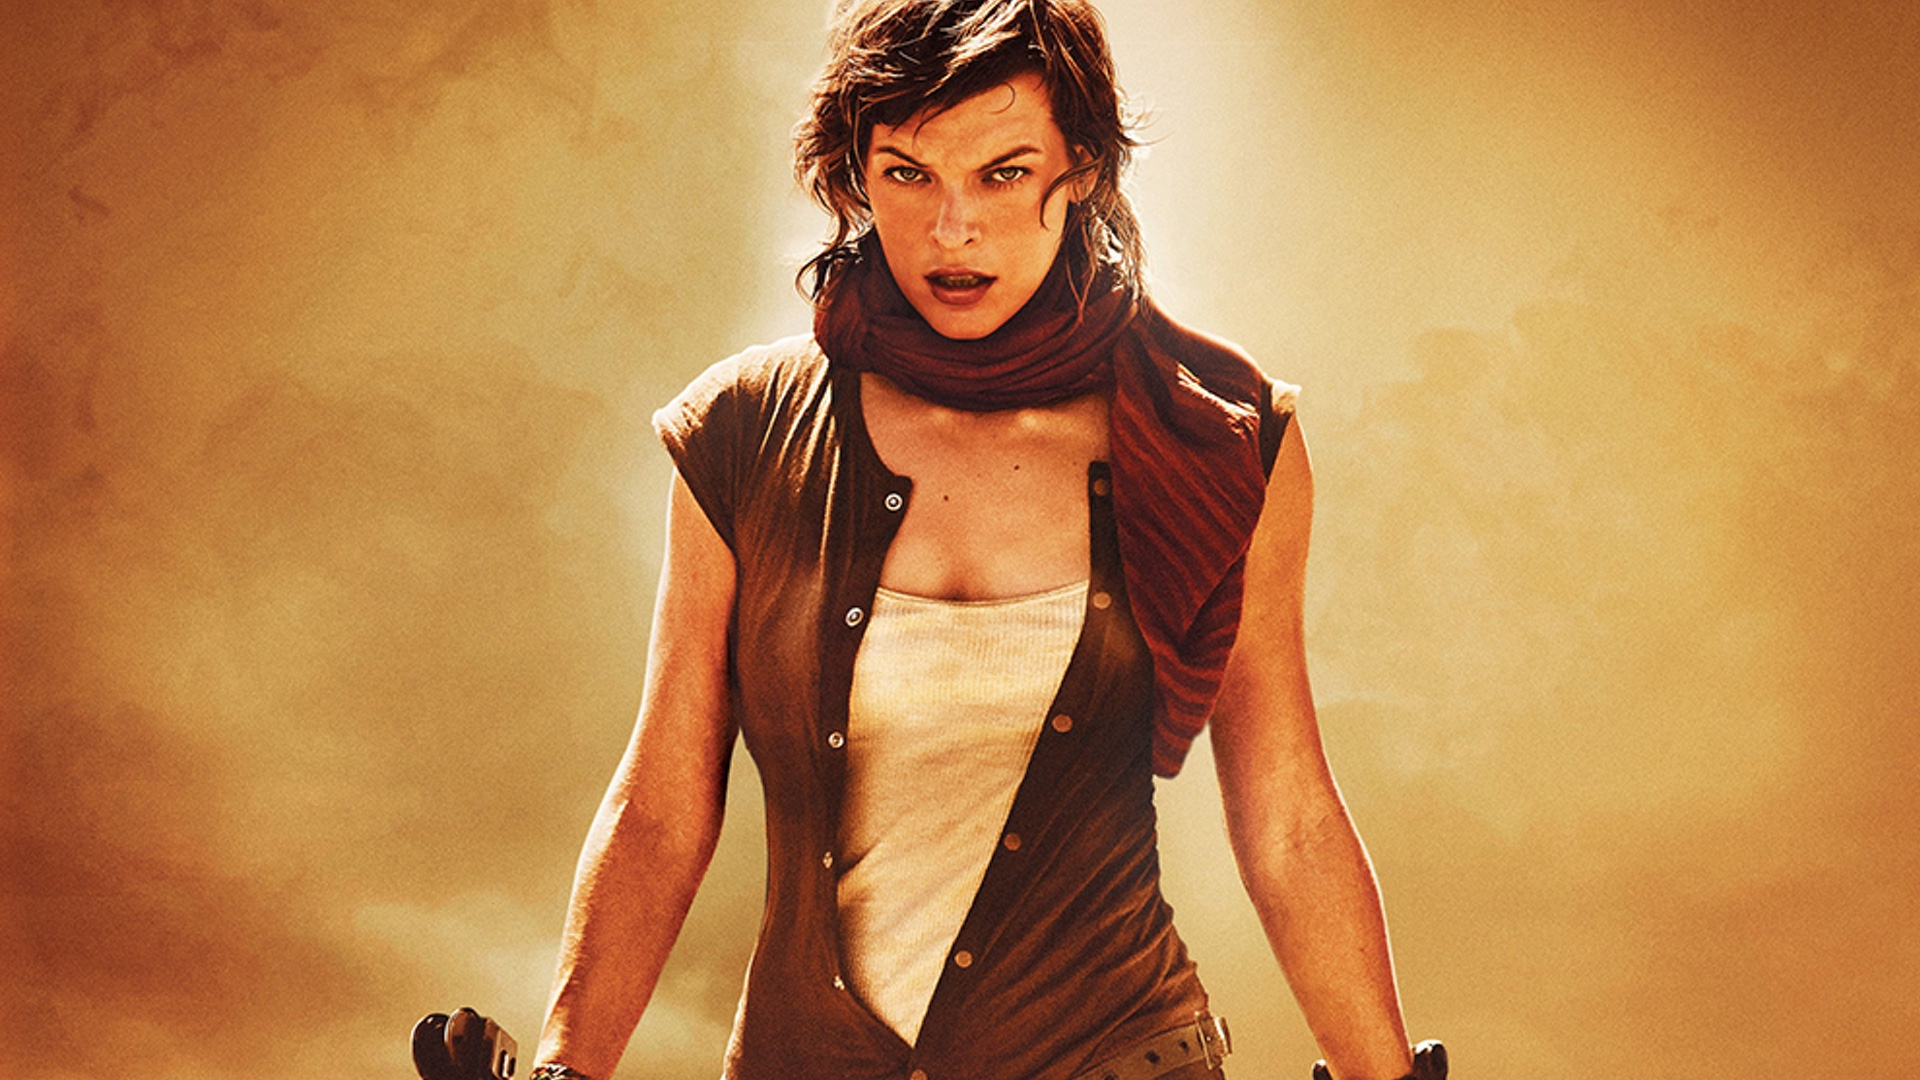 The New Lineup For The... Milla Jovovich Hellboy Reboot